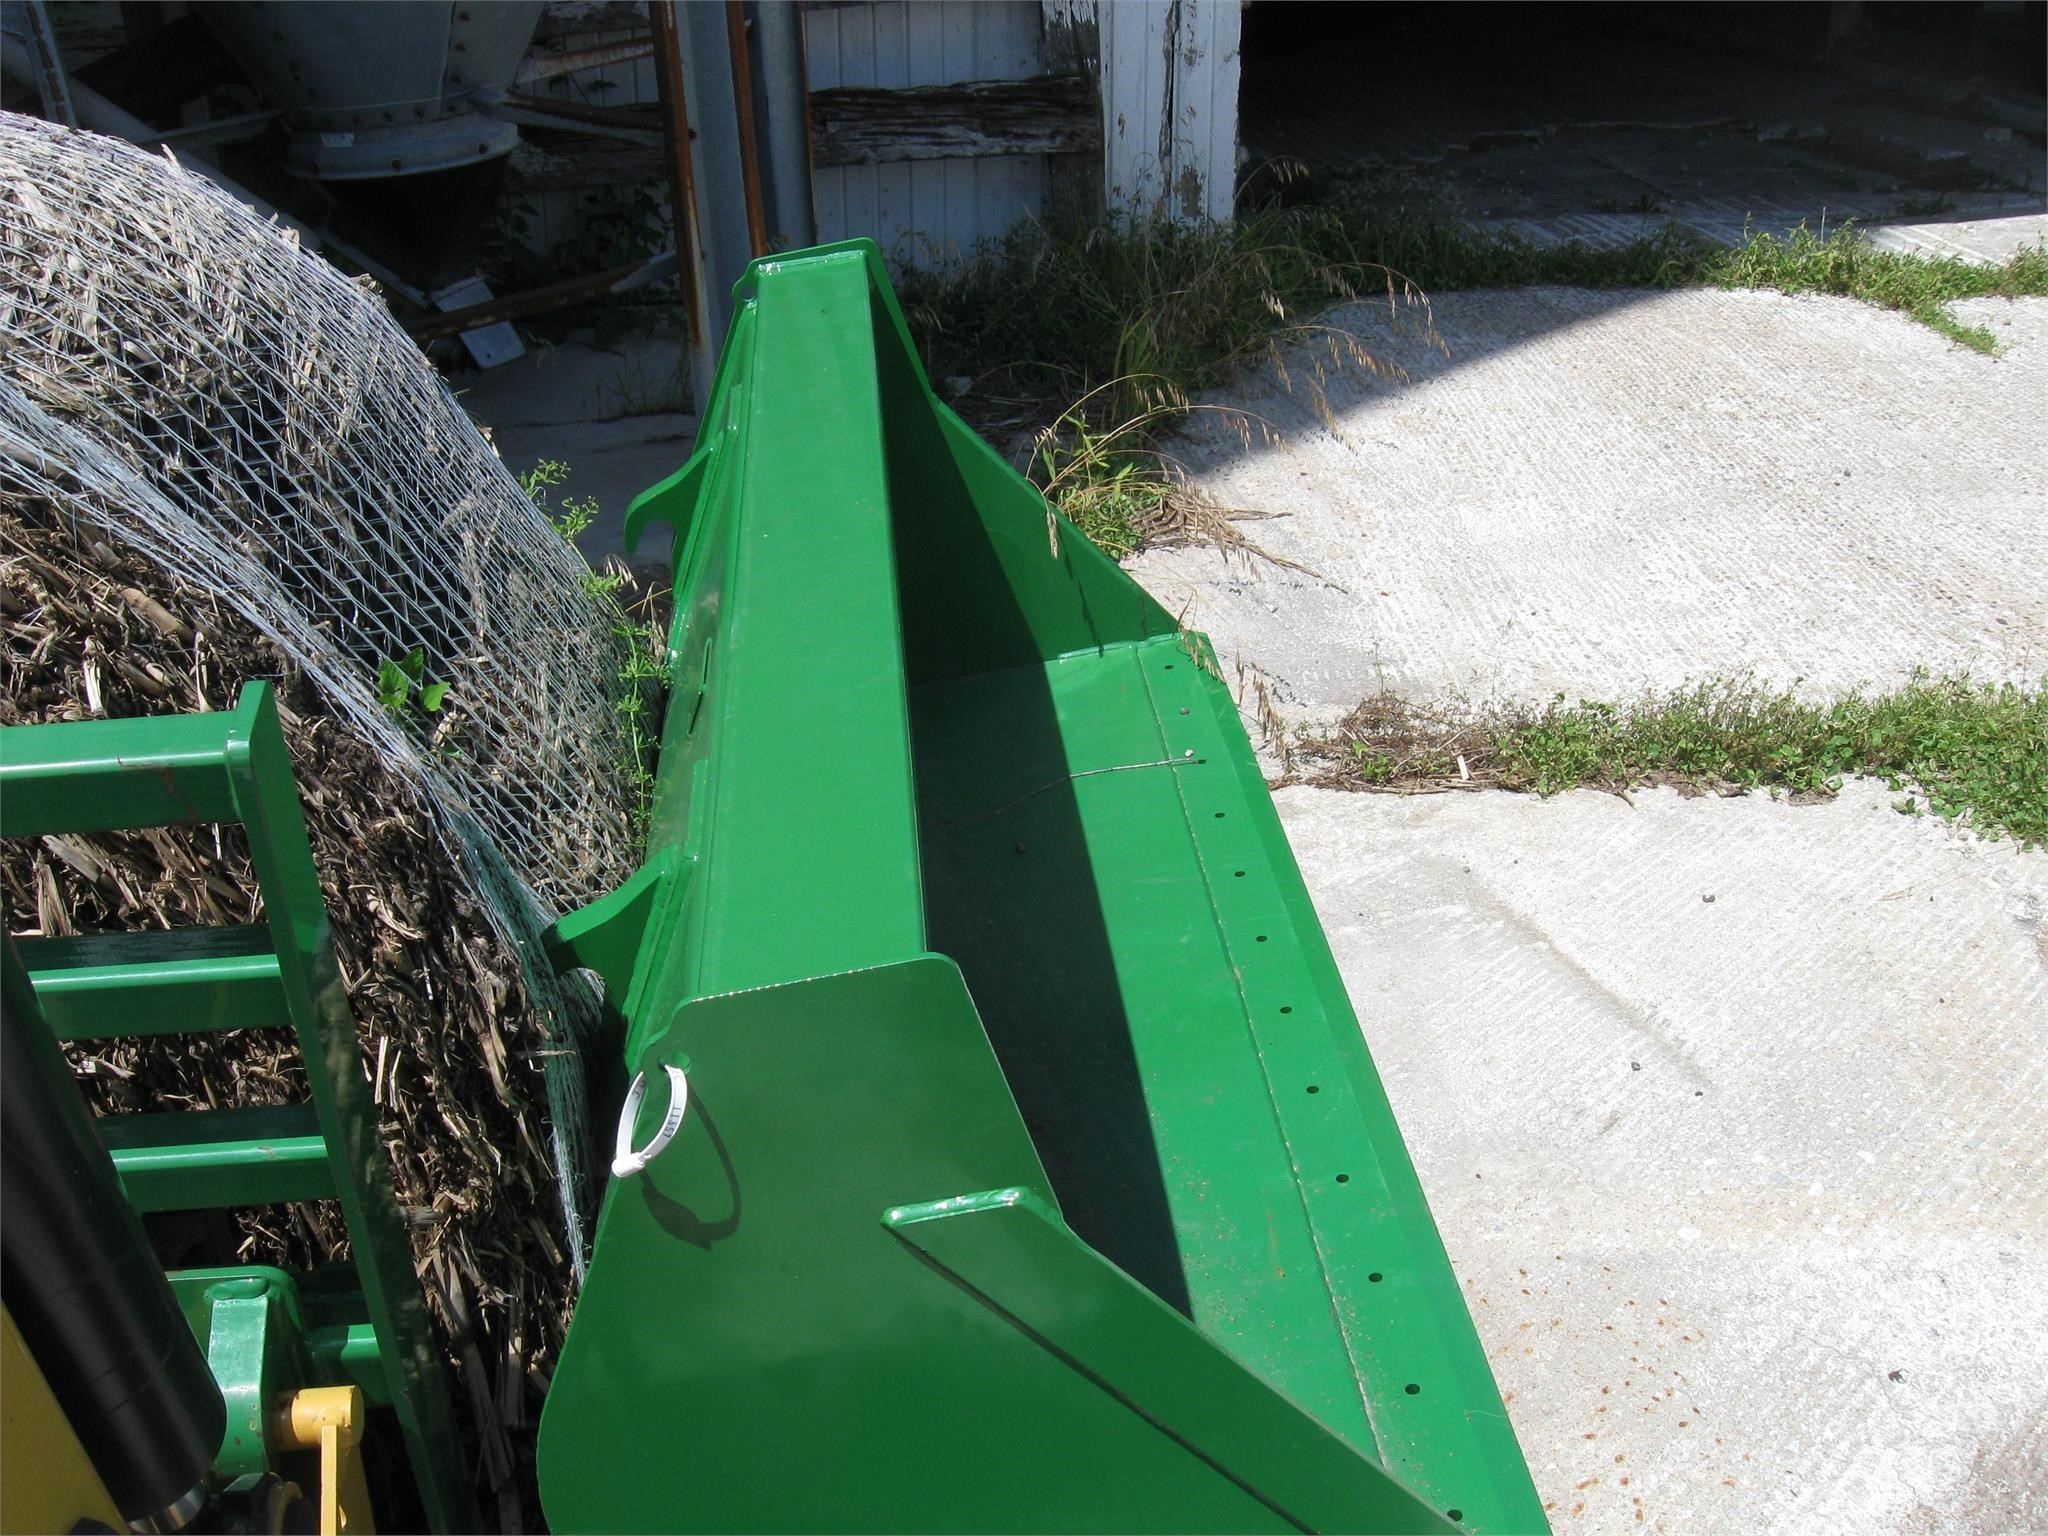 John Deere BW15935 Loader and Skid Steer Attachment